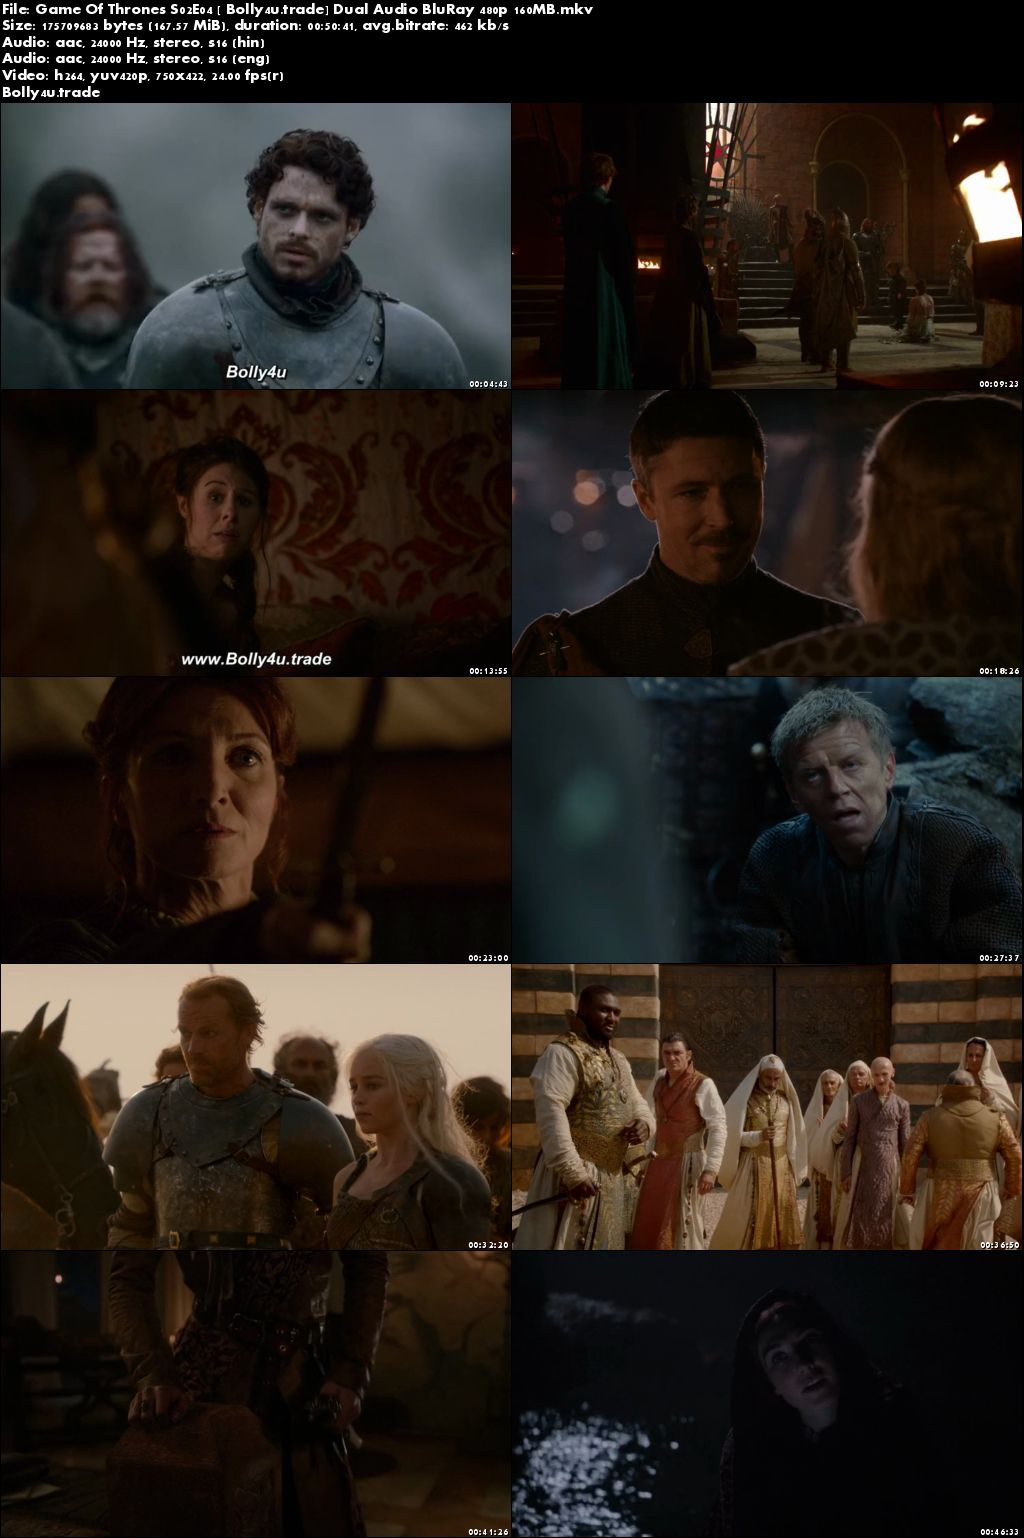 Game Of Thrones S02E04 BluRay 160Mb Hindi Dual Audio 480p Download